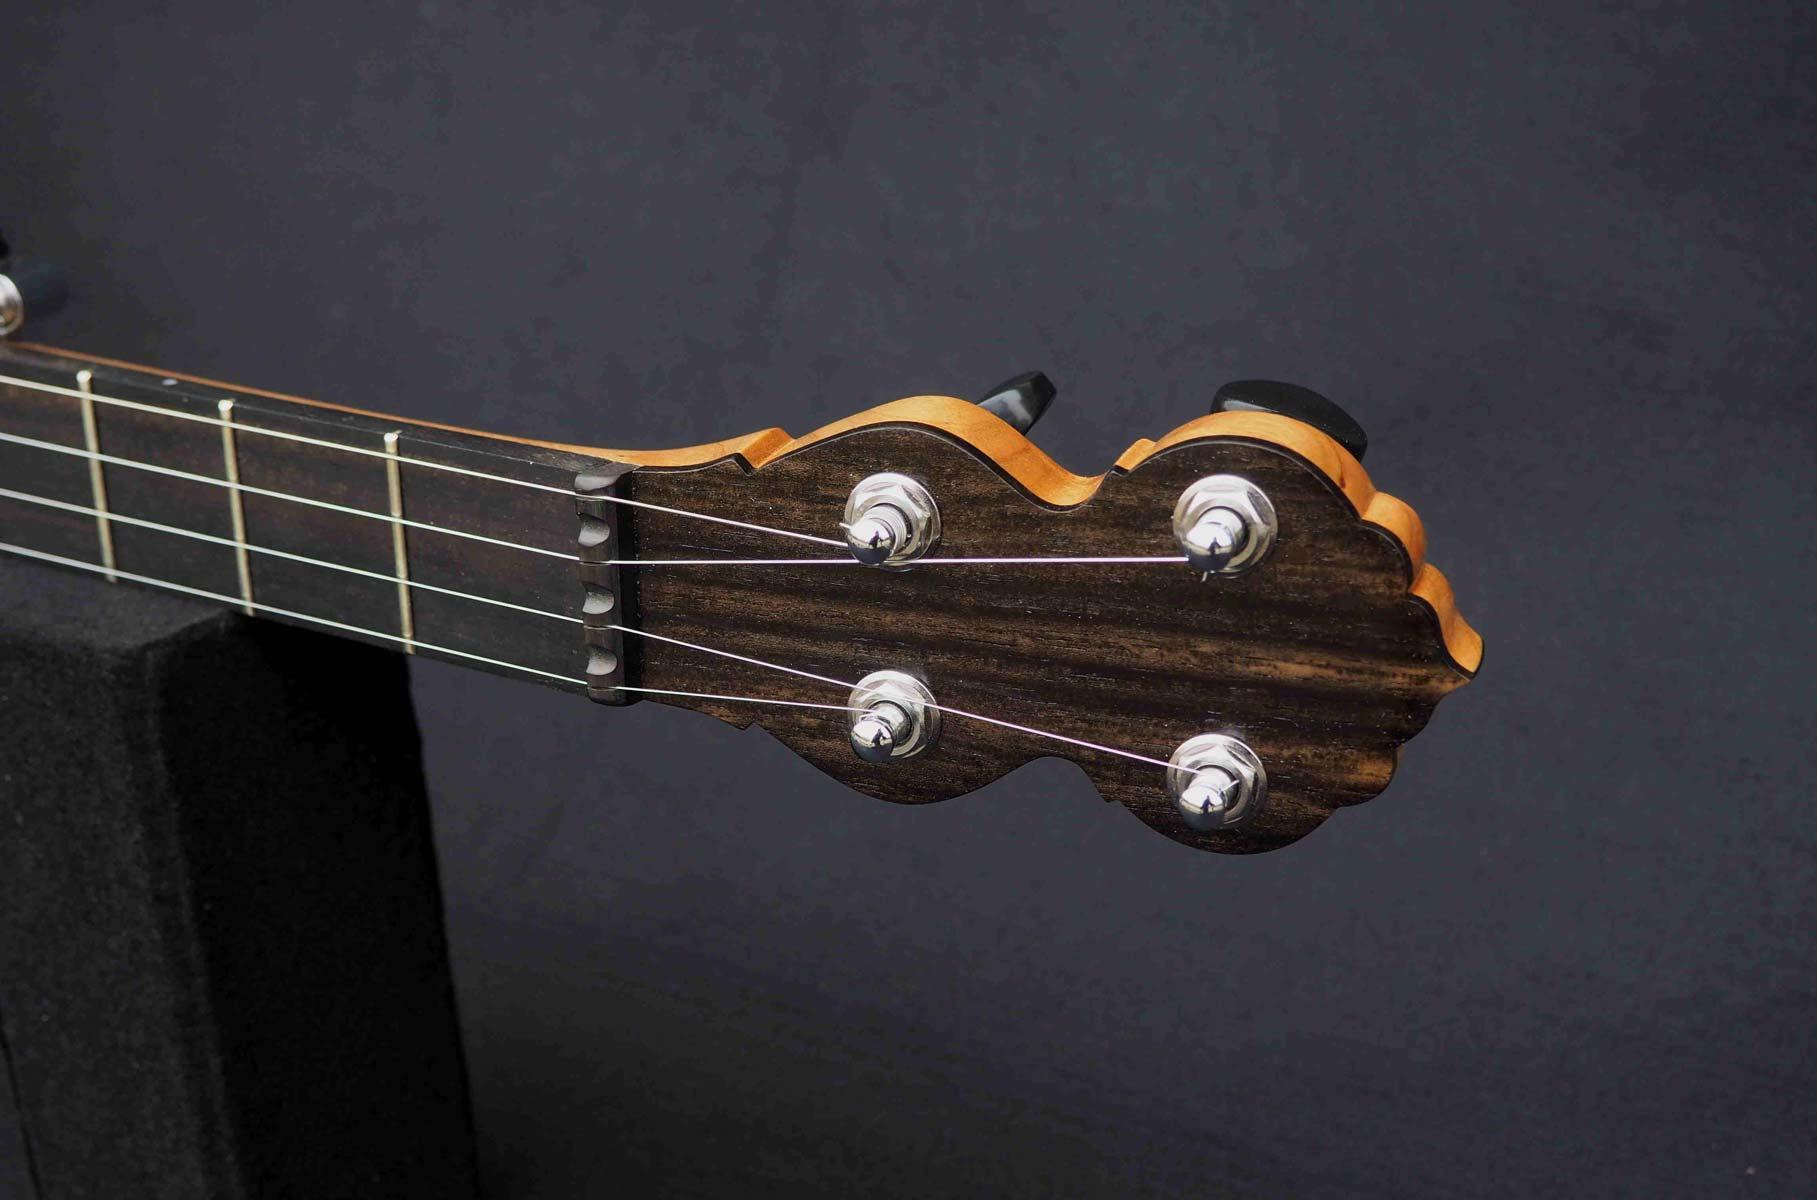 Eagle music 5 string Banjo headstock